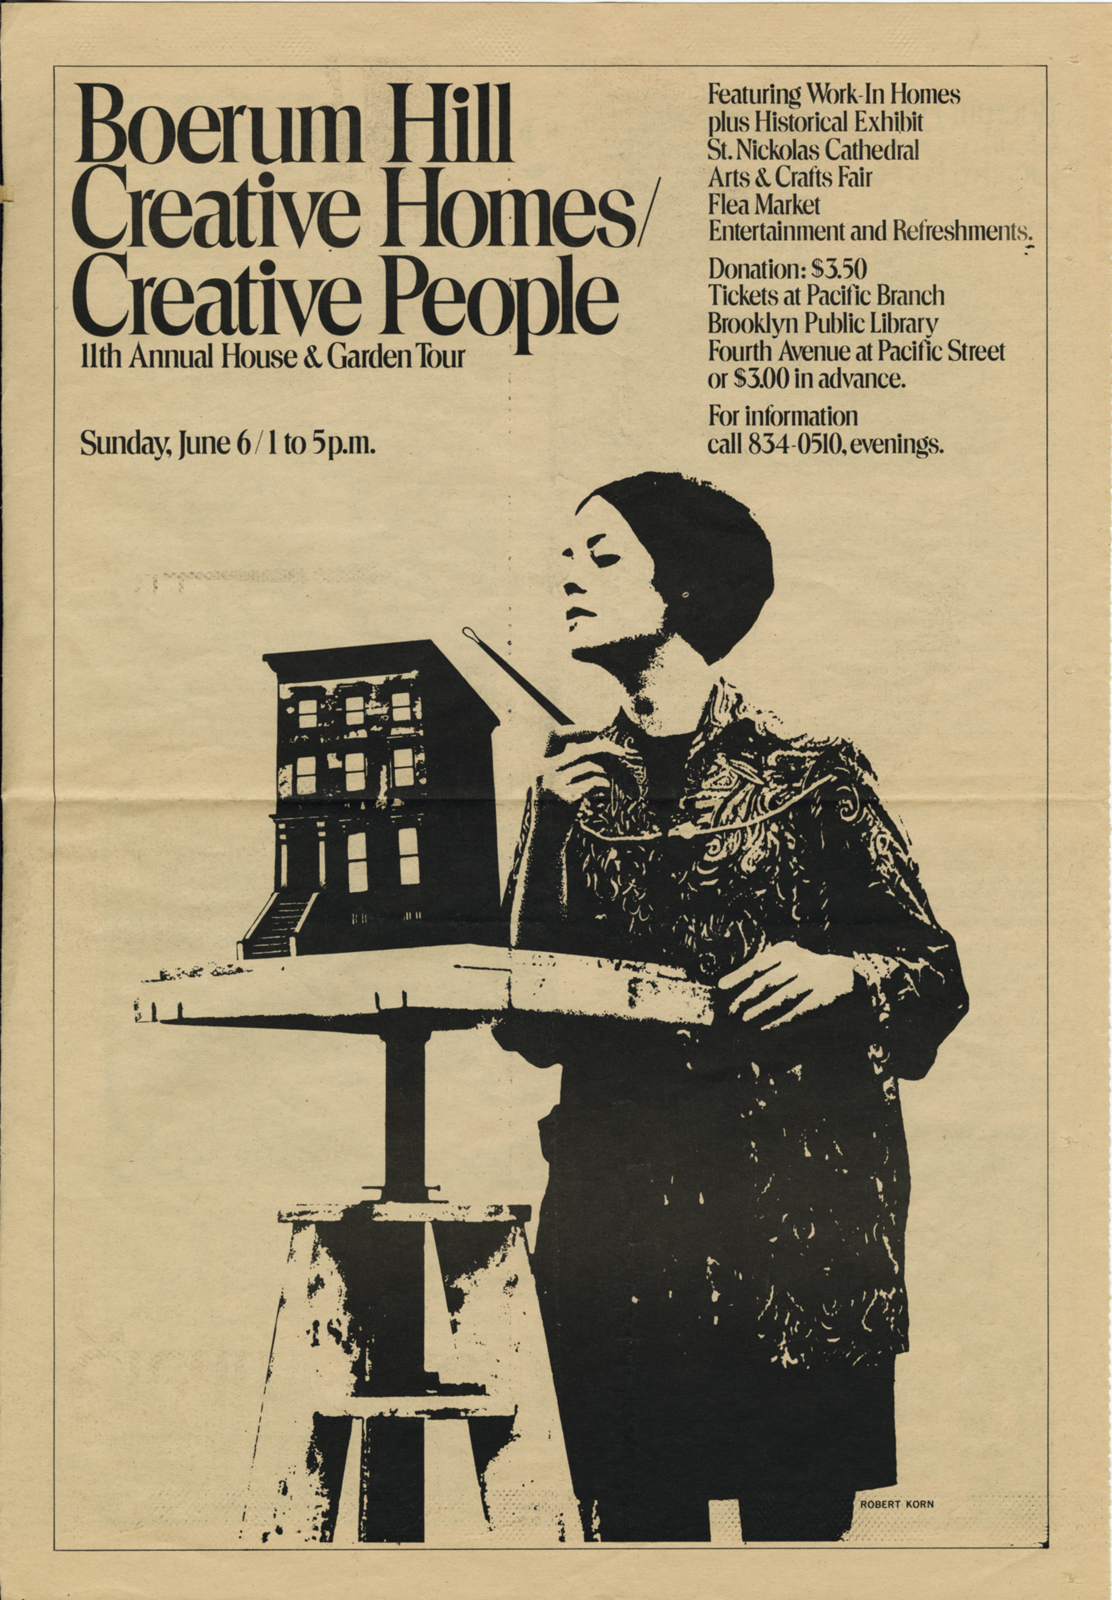 """Brownstone Brooklyn creatively reimagined by a new middle class. A 1976 home tour poster by the Boerum Hill Association shows a """"creative"""" brownstoner sculpting a brownstone. (Courtesy of Robert Korn.)"""